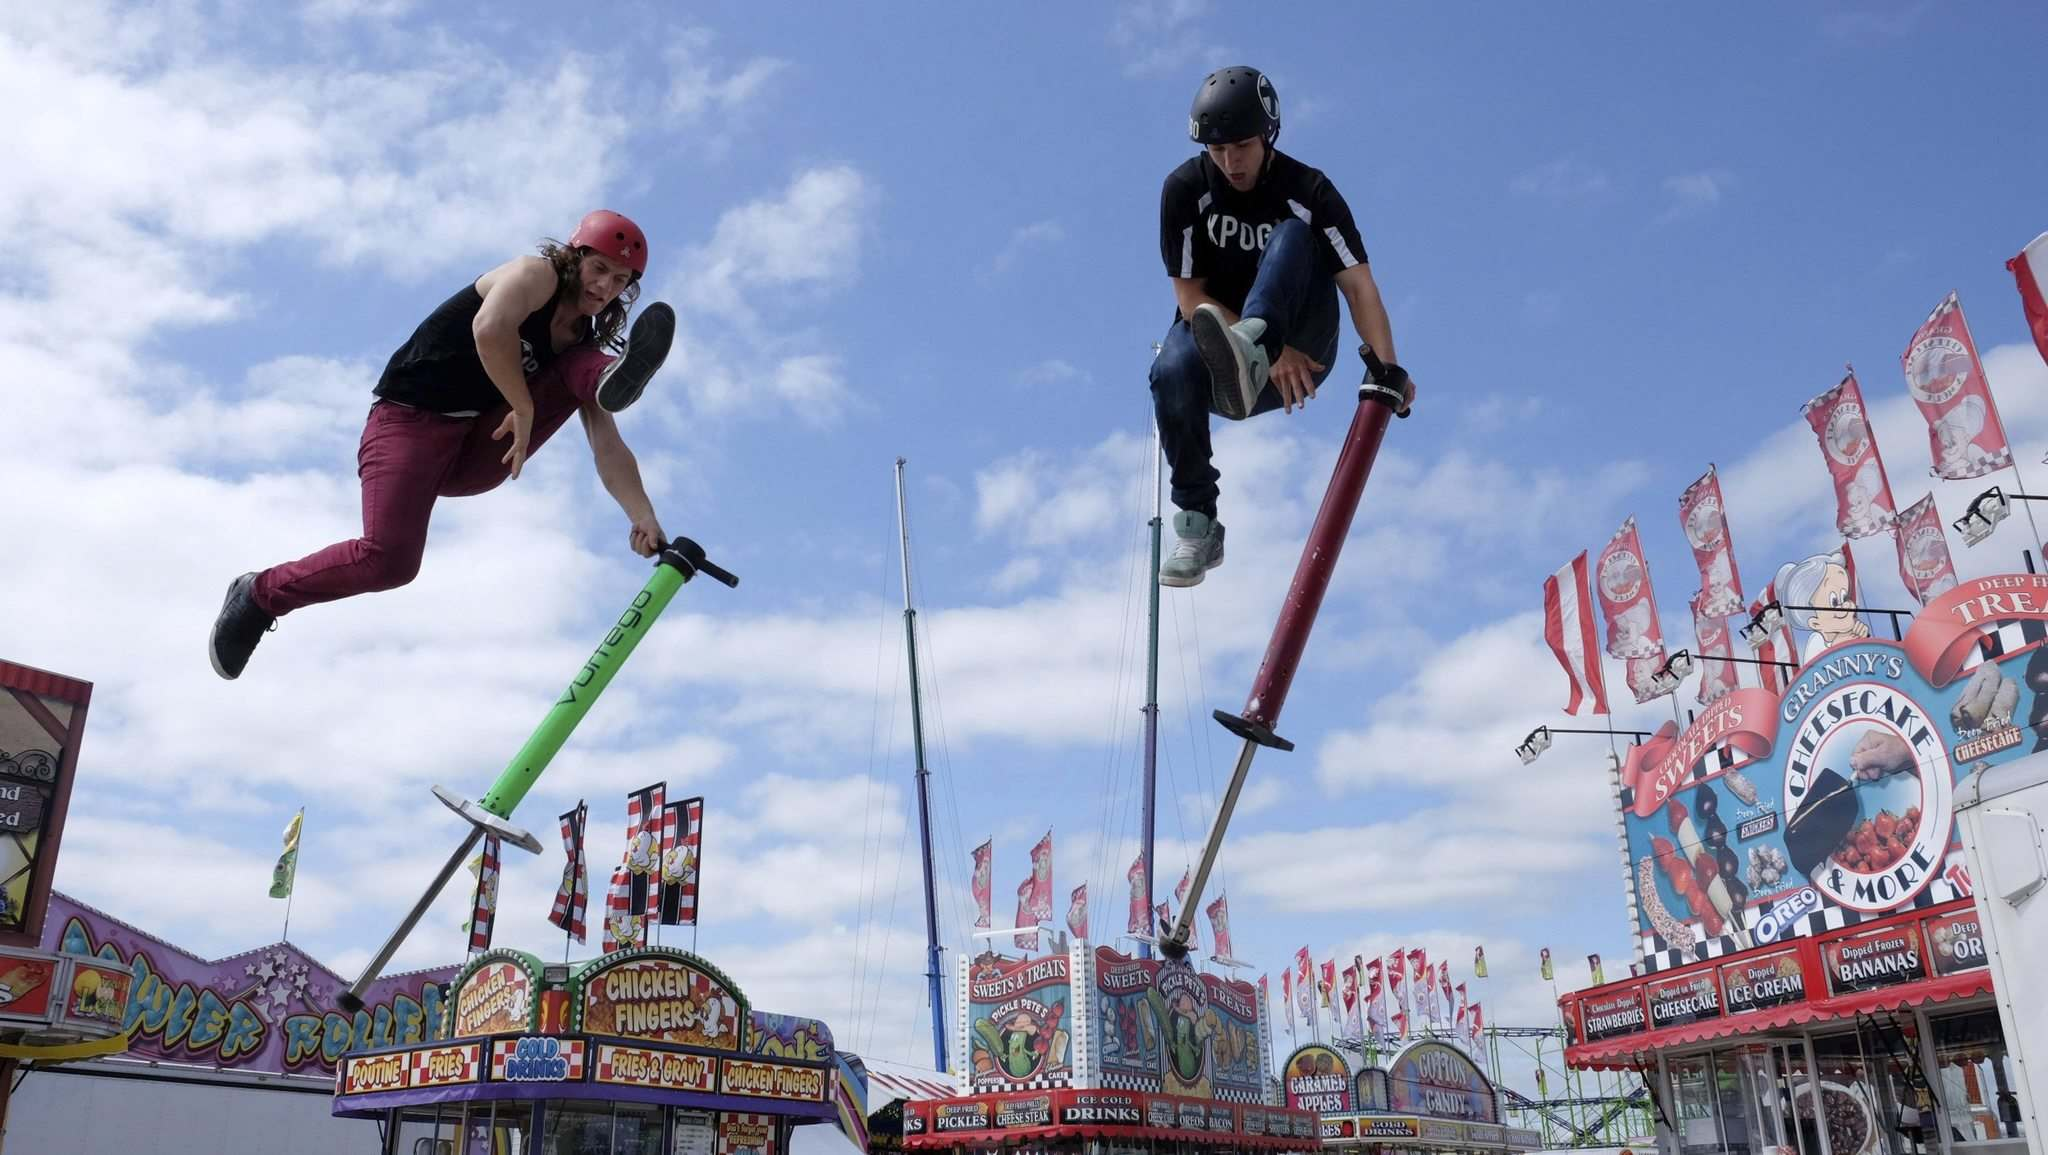 ZACHARY PRONG / WINNIPEG FREE PRESS</p><p>Xpogo athletes Daniel Mahoney (left) and Harry White practise their high-flying moves at the Red River Ex Thursday. The fair kicks off today.</p></p>